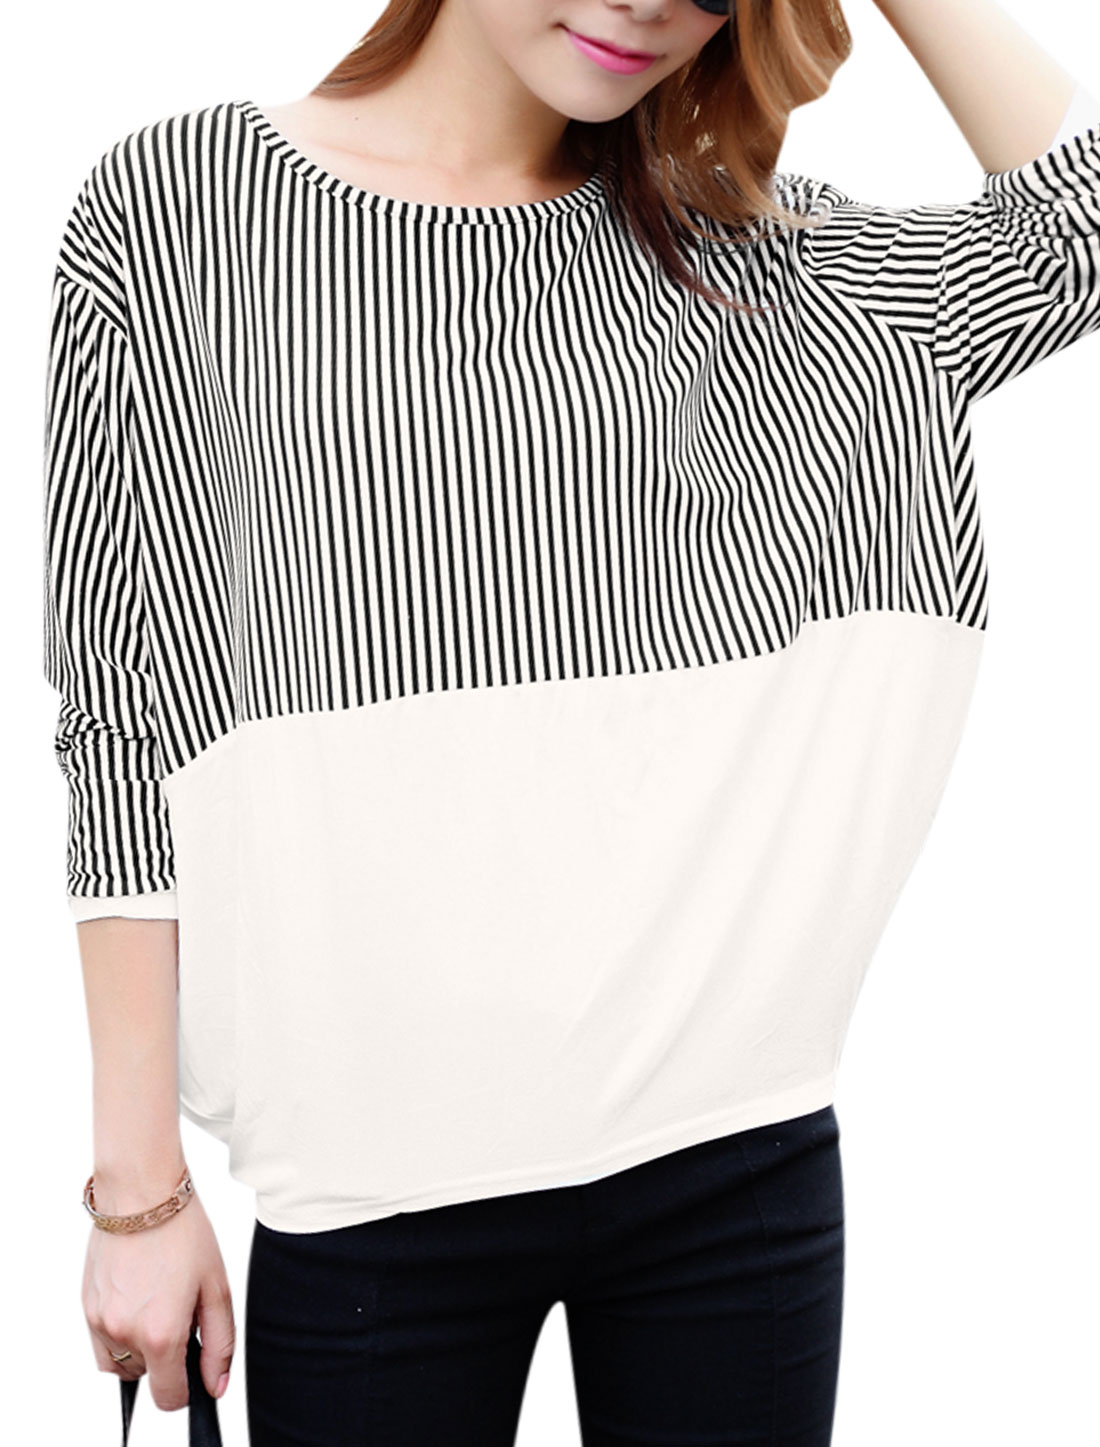 Women Vertical Stripes Patched Design Contrast Color Loose Fit Top White Black XS